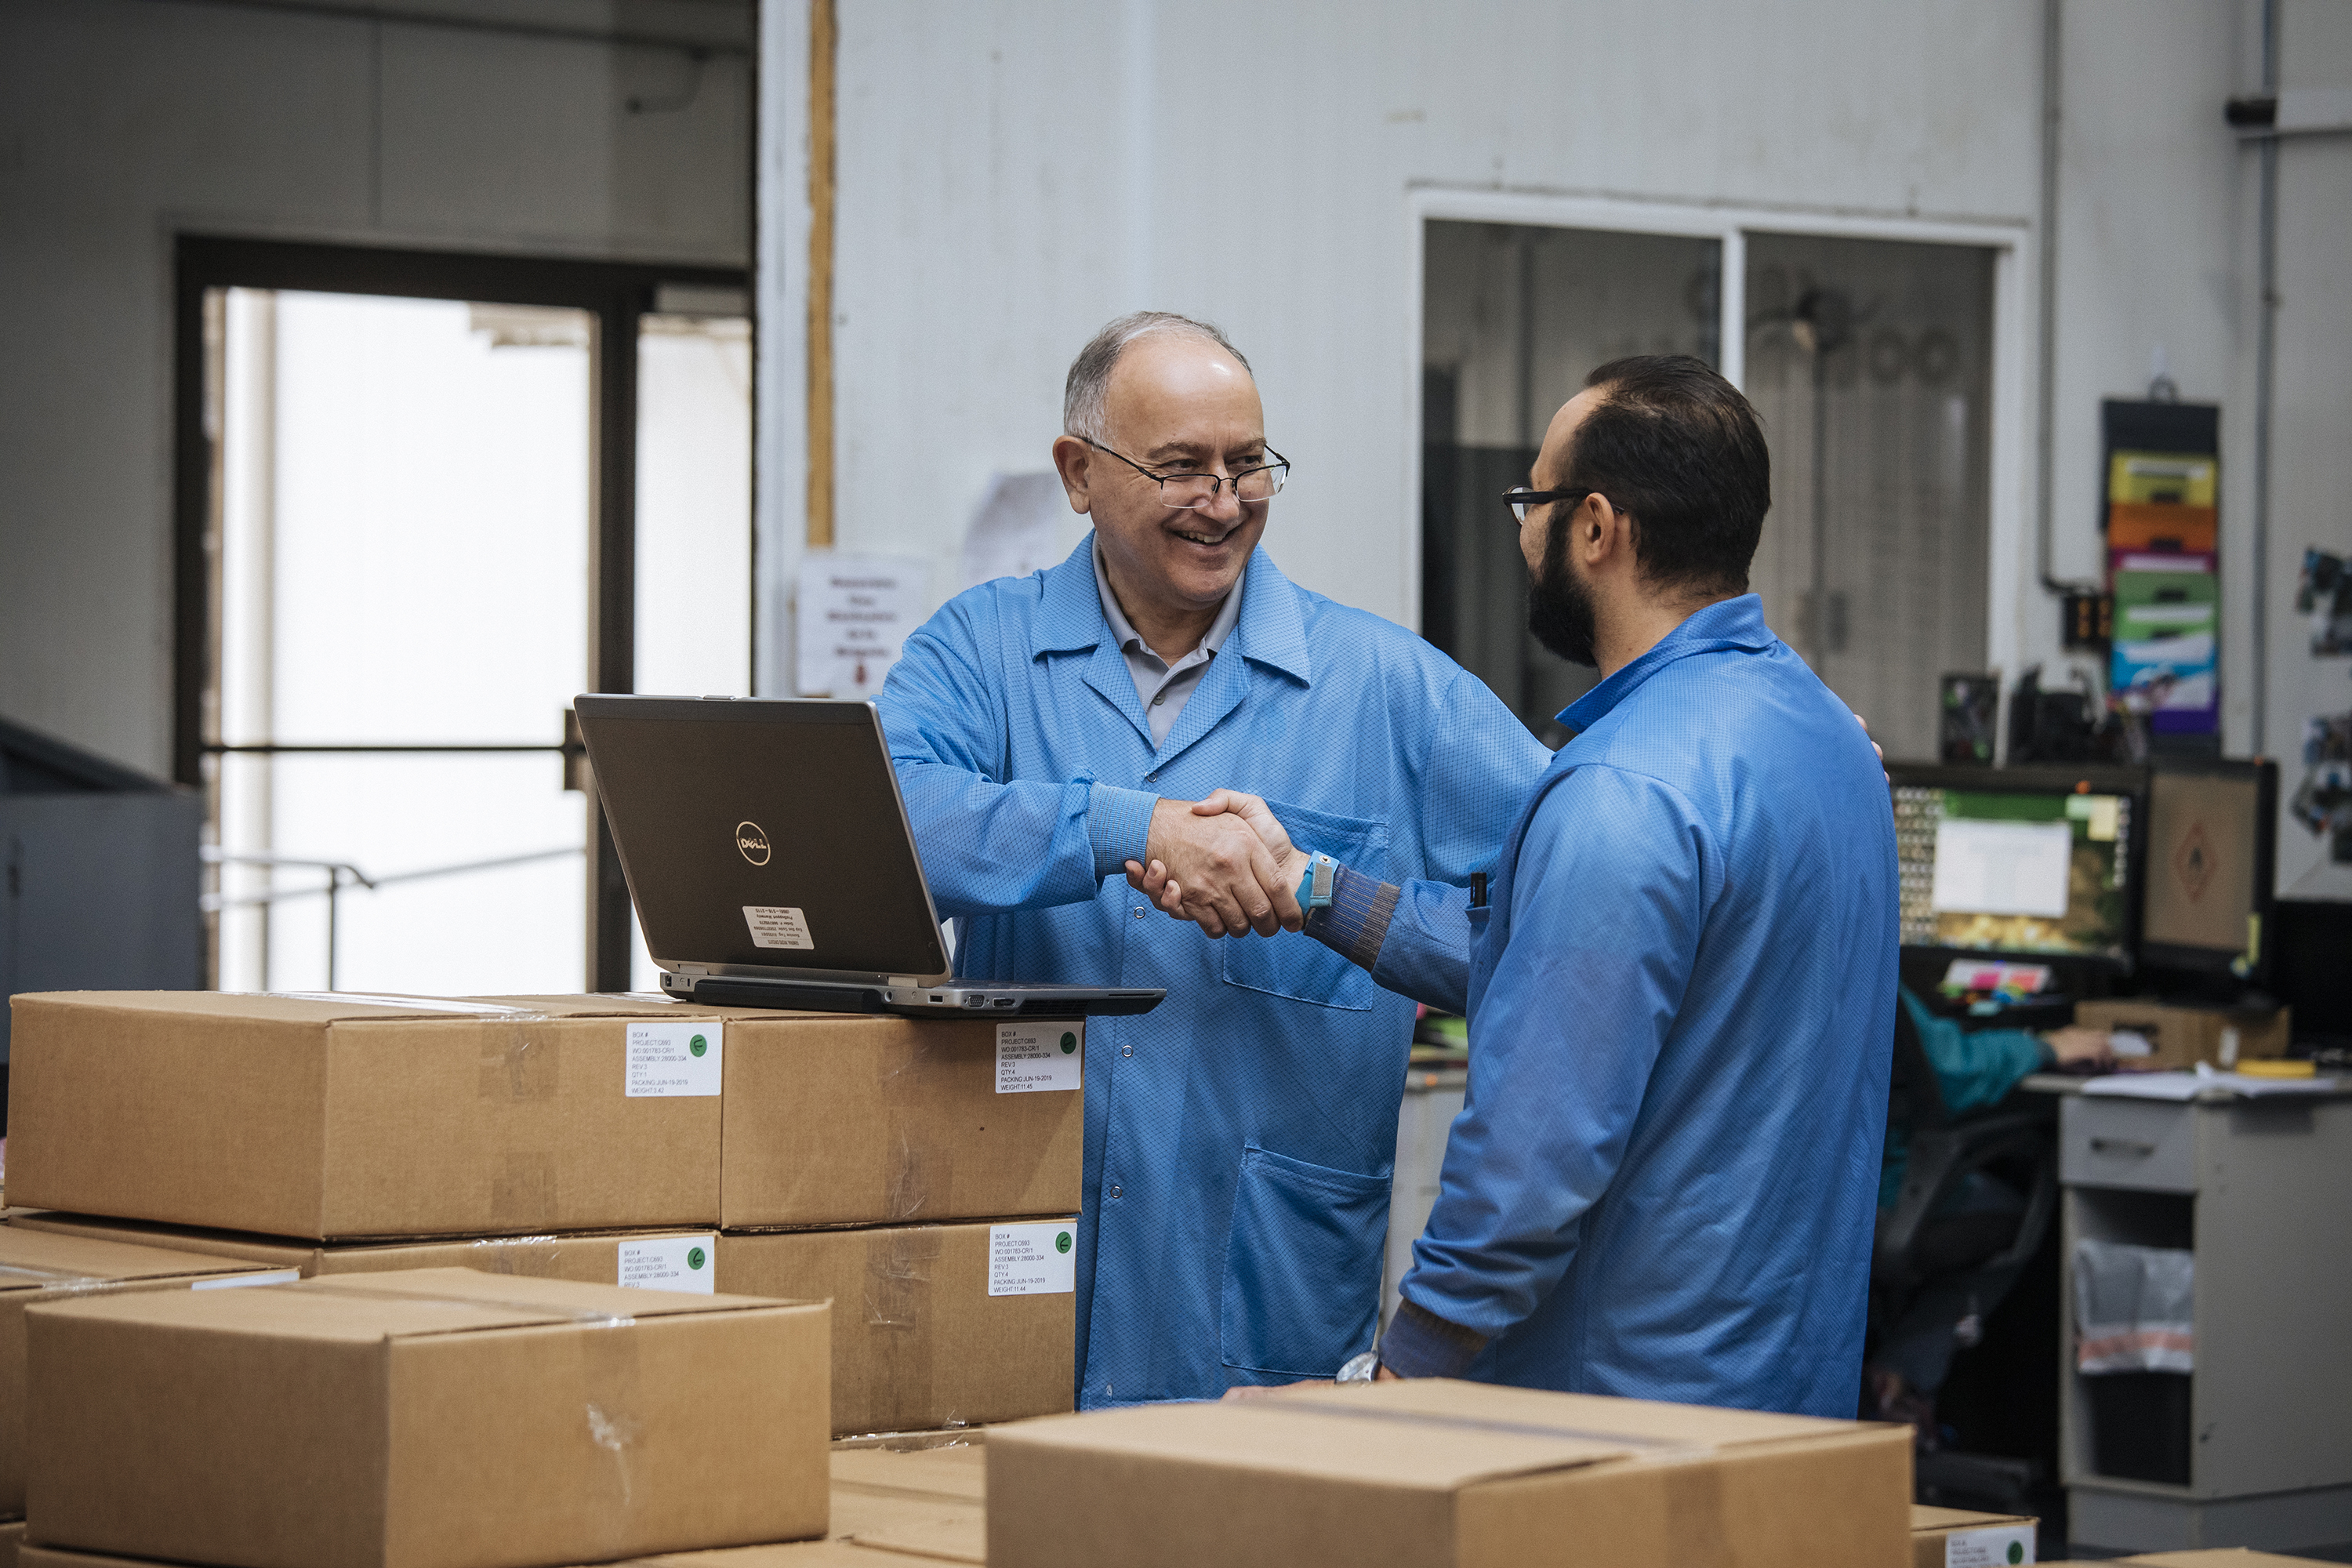 Supplier shaking hands and smiling